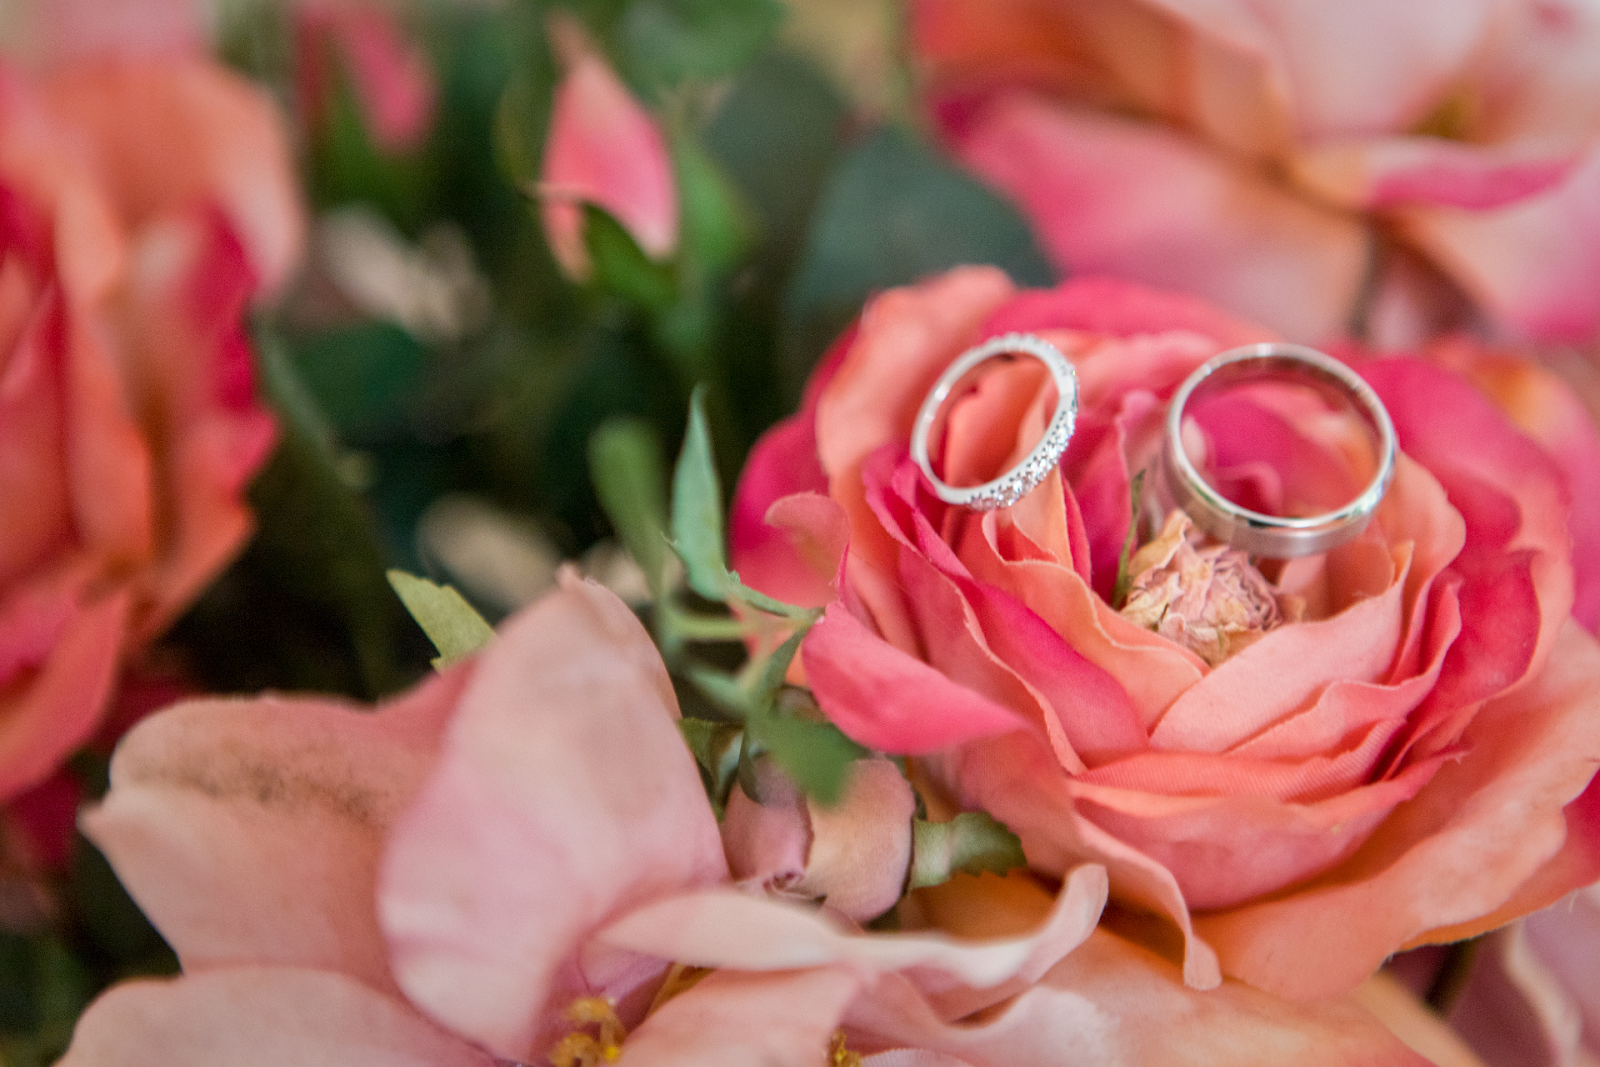 an engagement ring and wedding band on pink roses